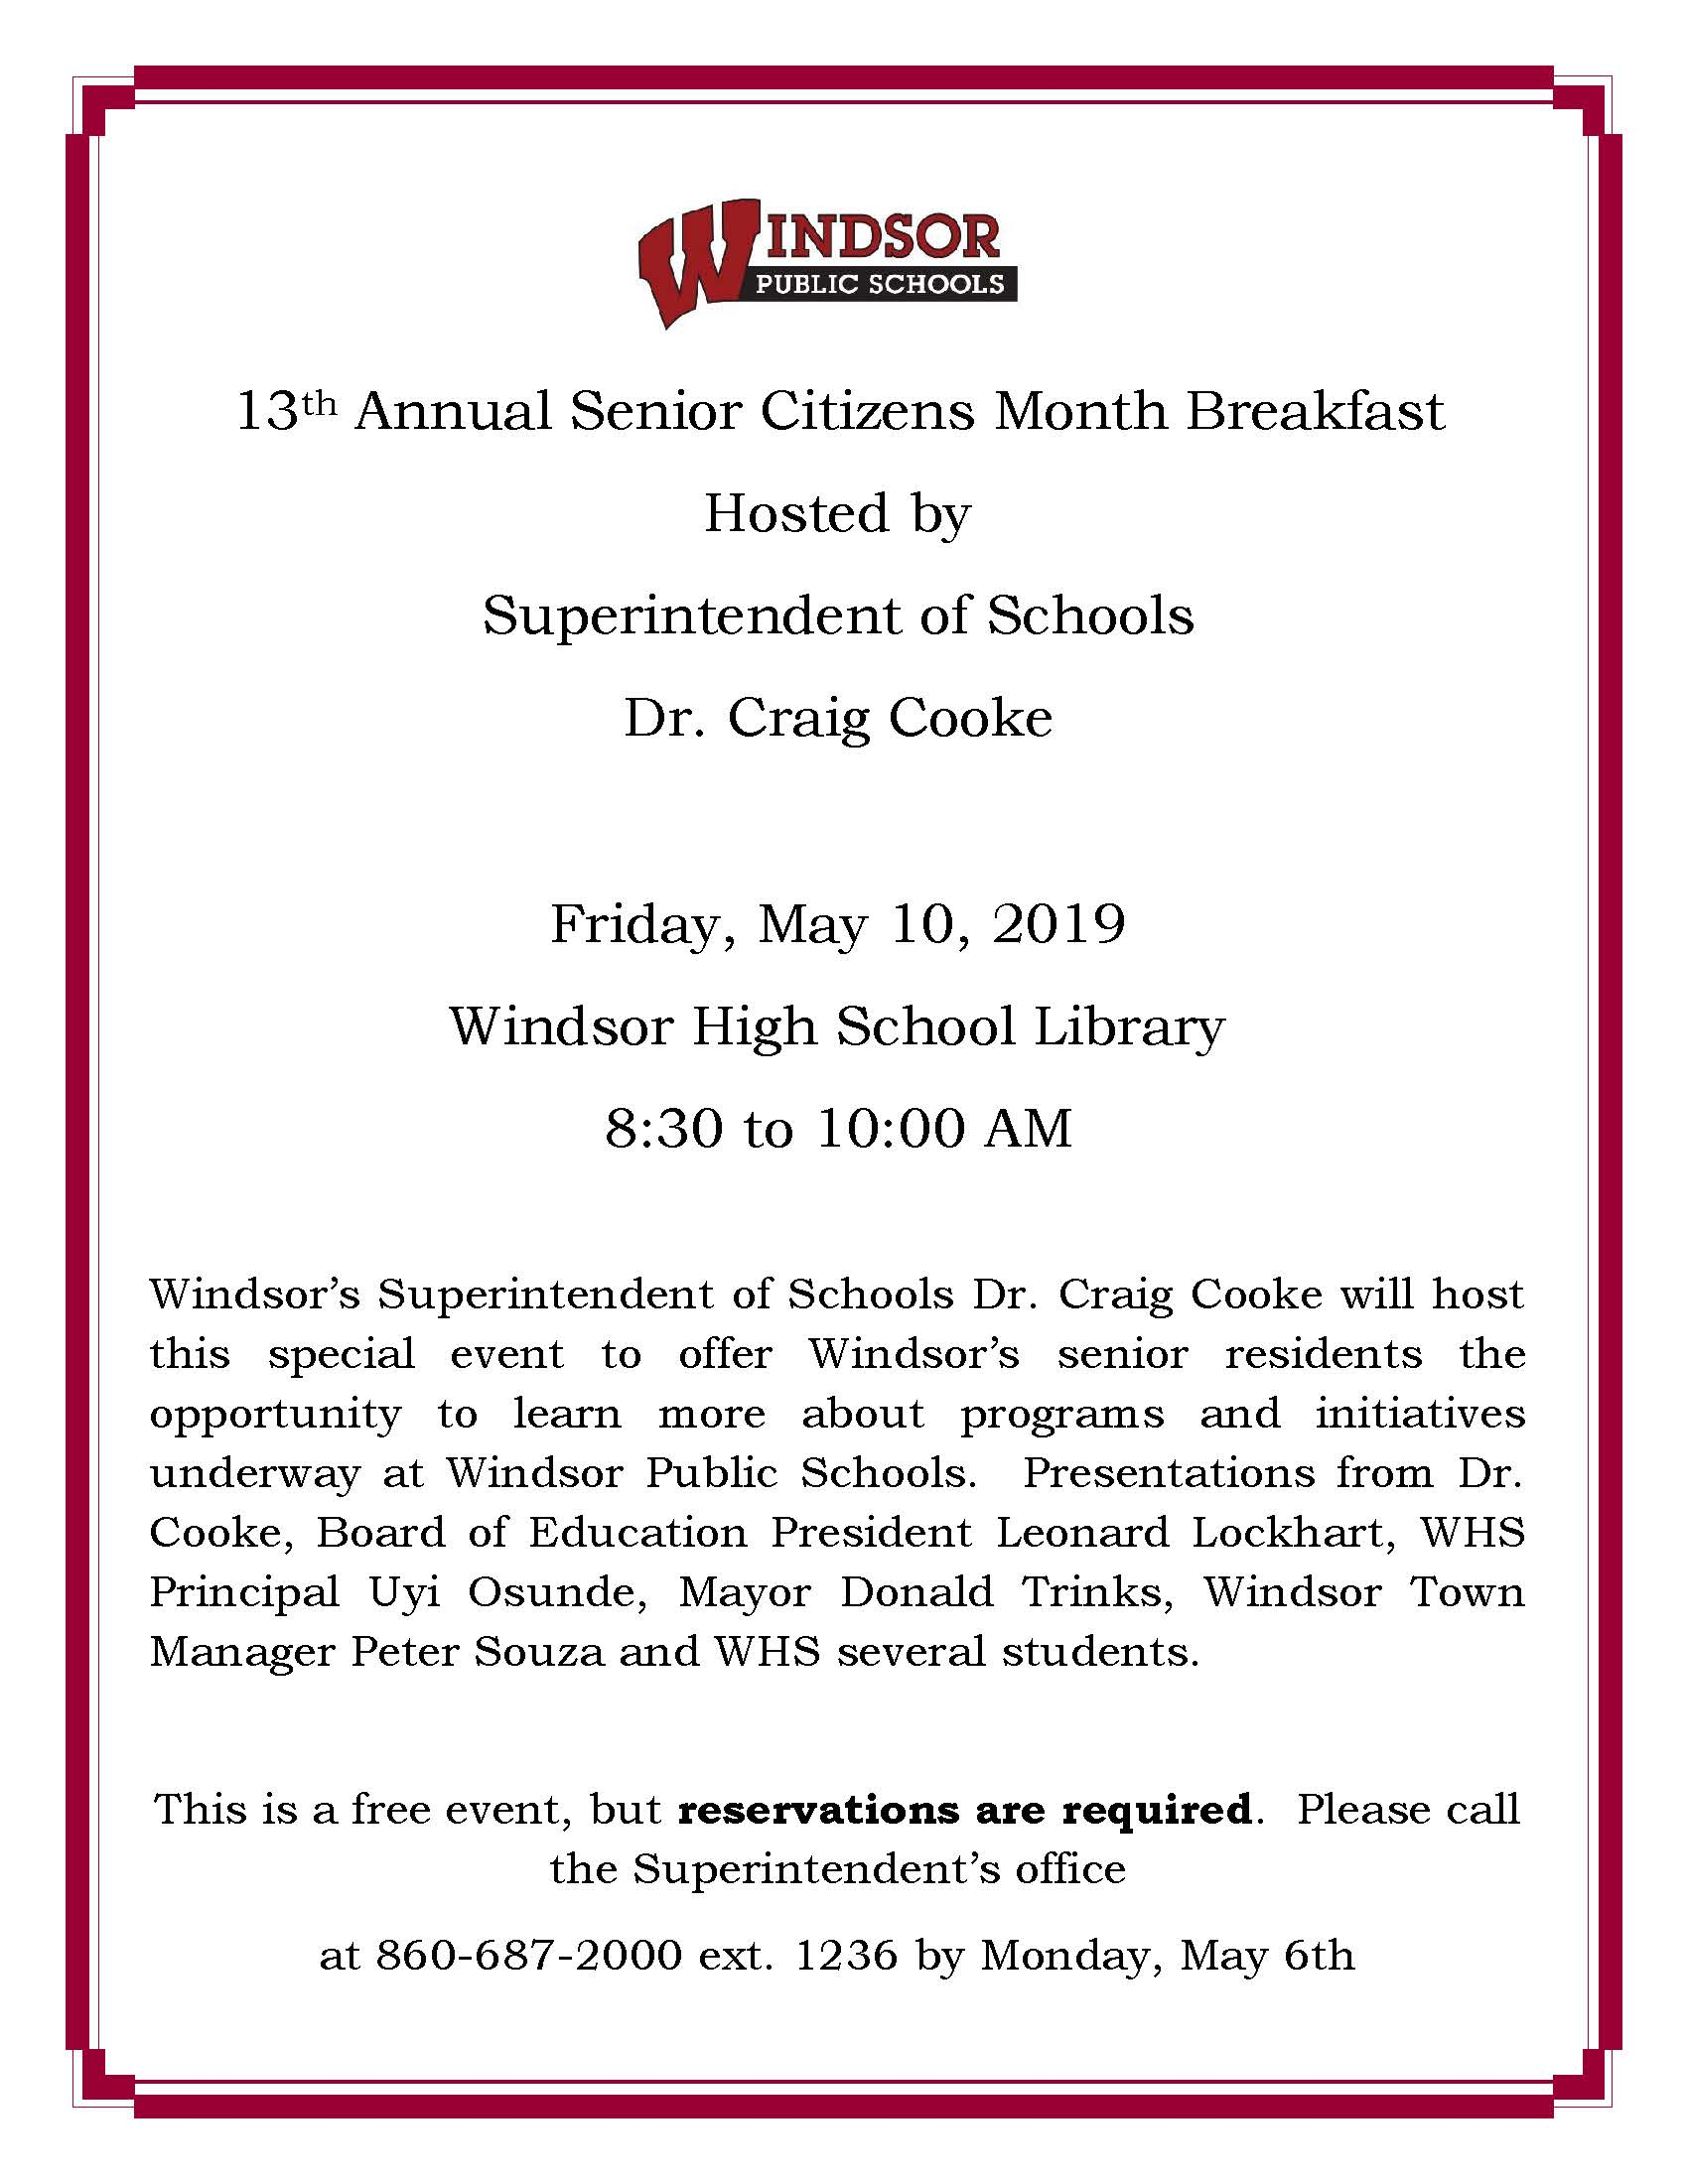 Area senior citizens invited to breakfast. Register by May 6th.